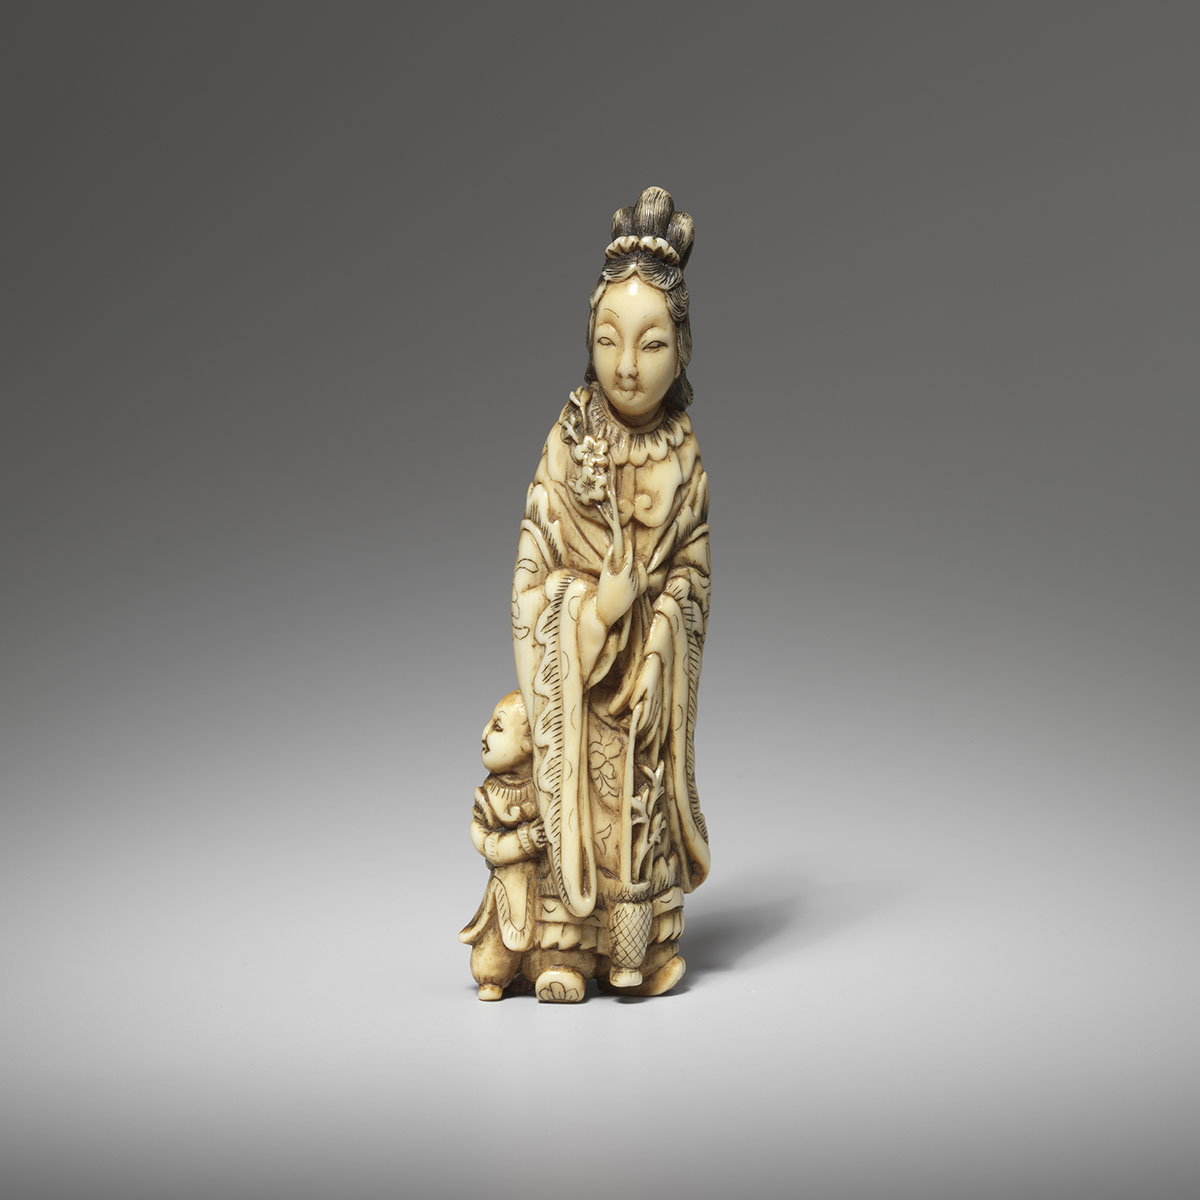 Ivory Netsuke of Seiobo, MR3554_v.1.1